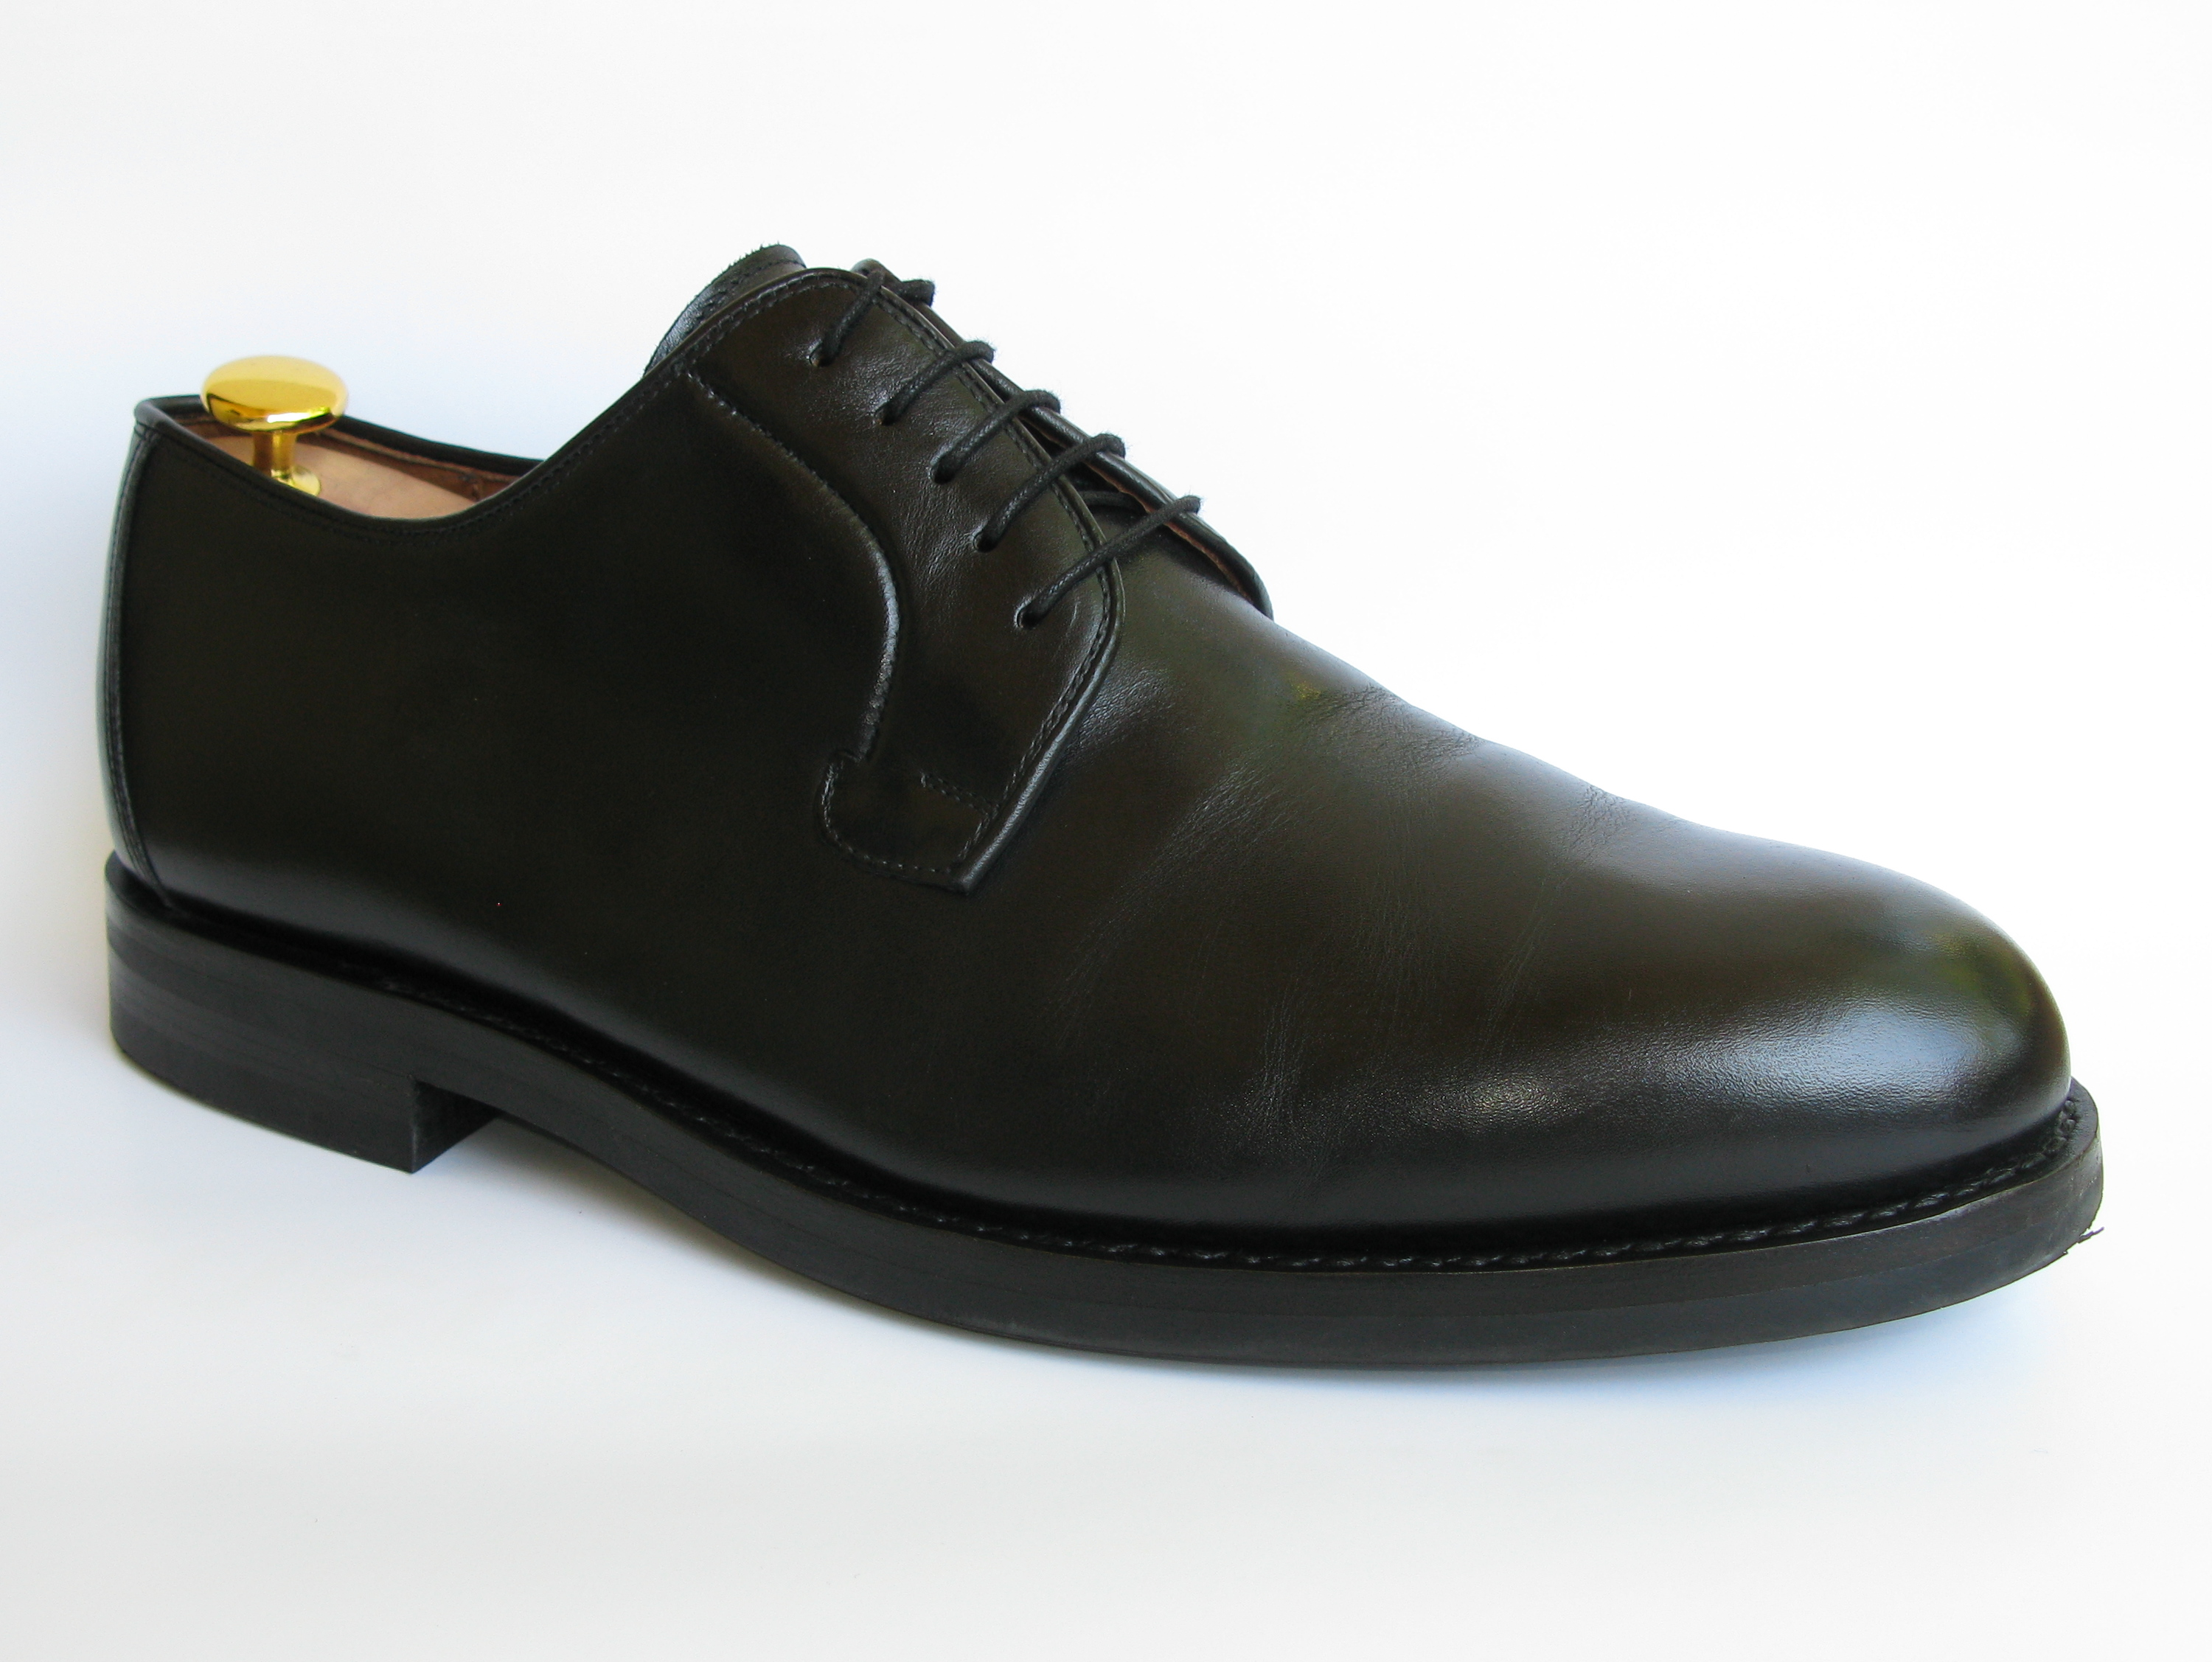 Nlack Dress Shoes At Paylrss